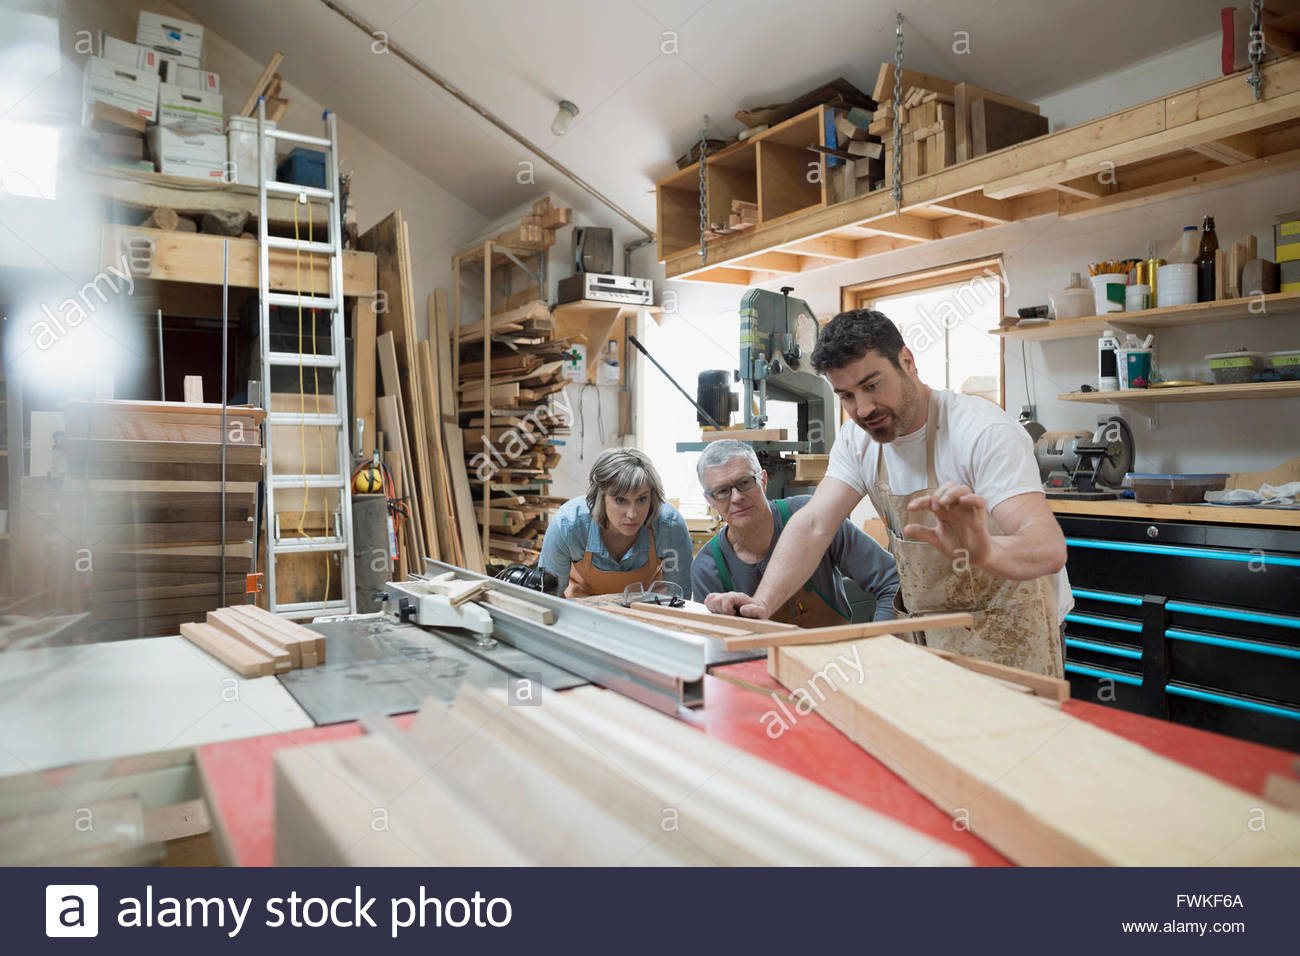 Carpenters discussing wood plank in workshop - Stock Image